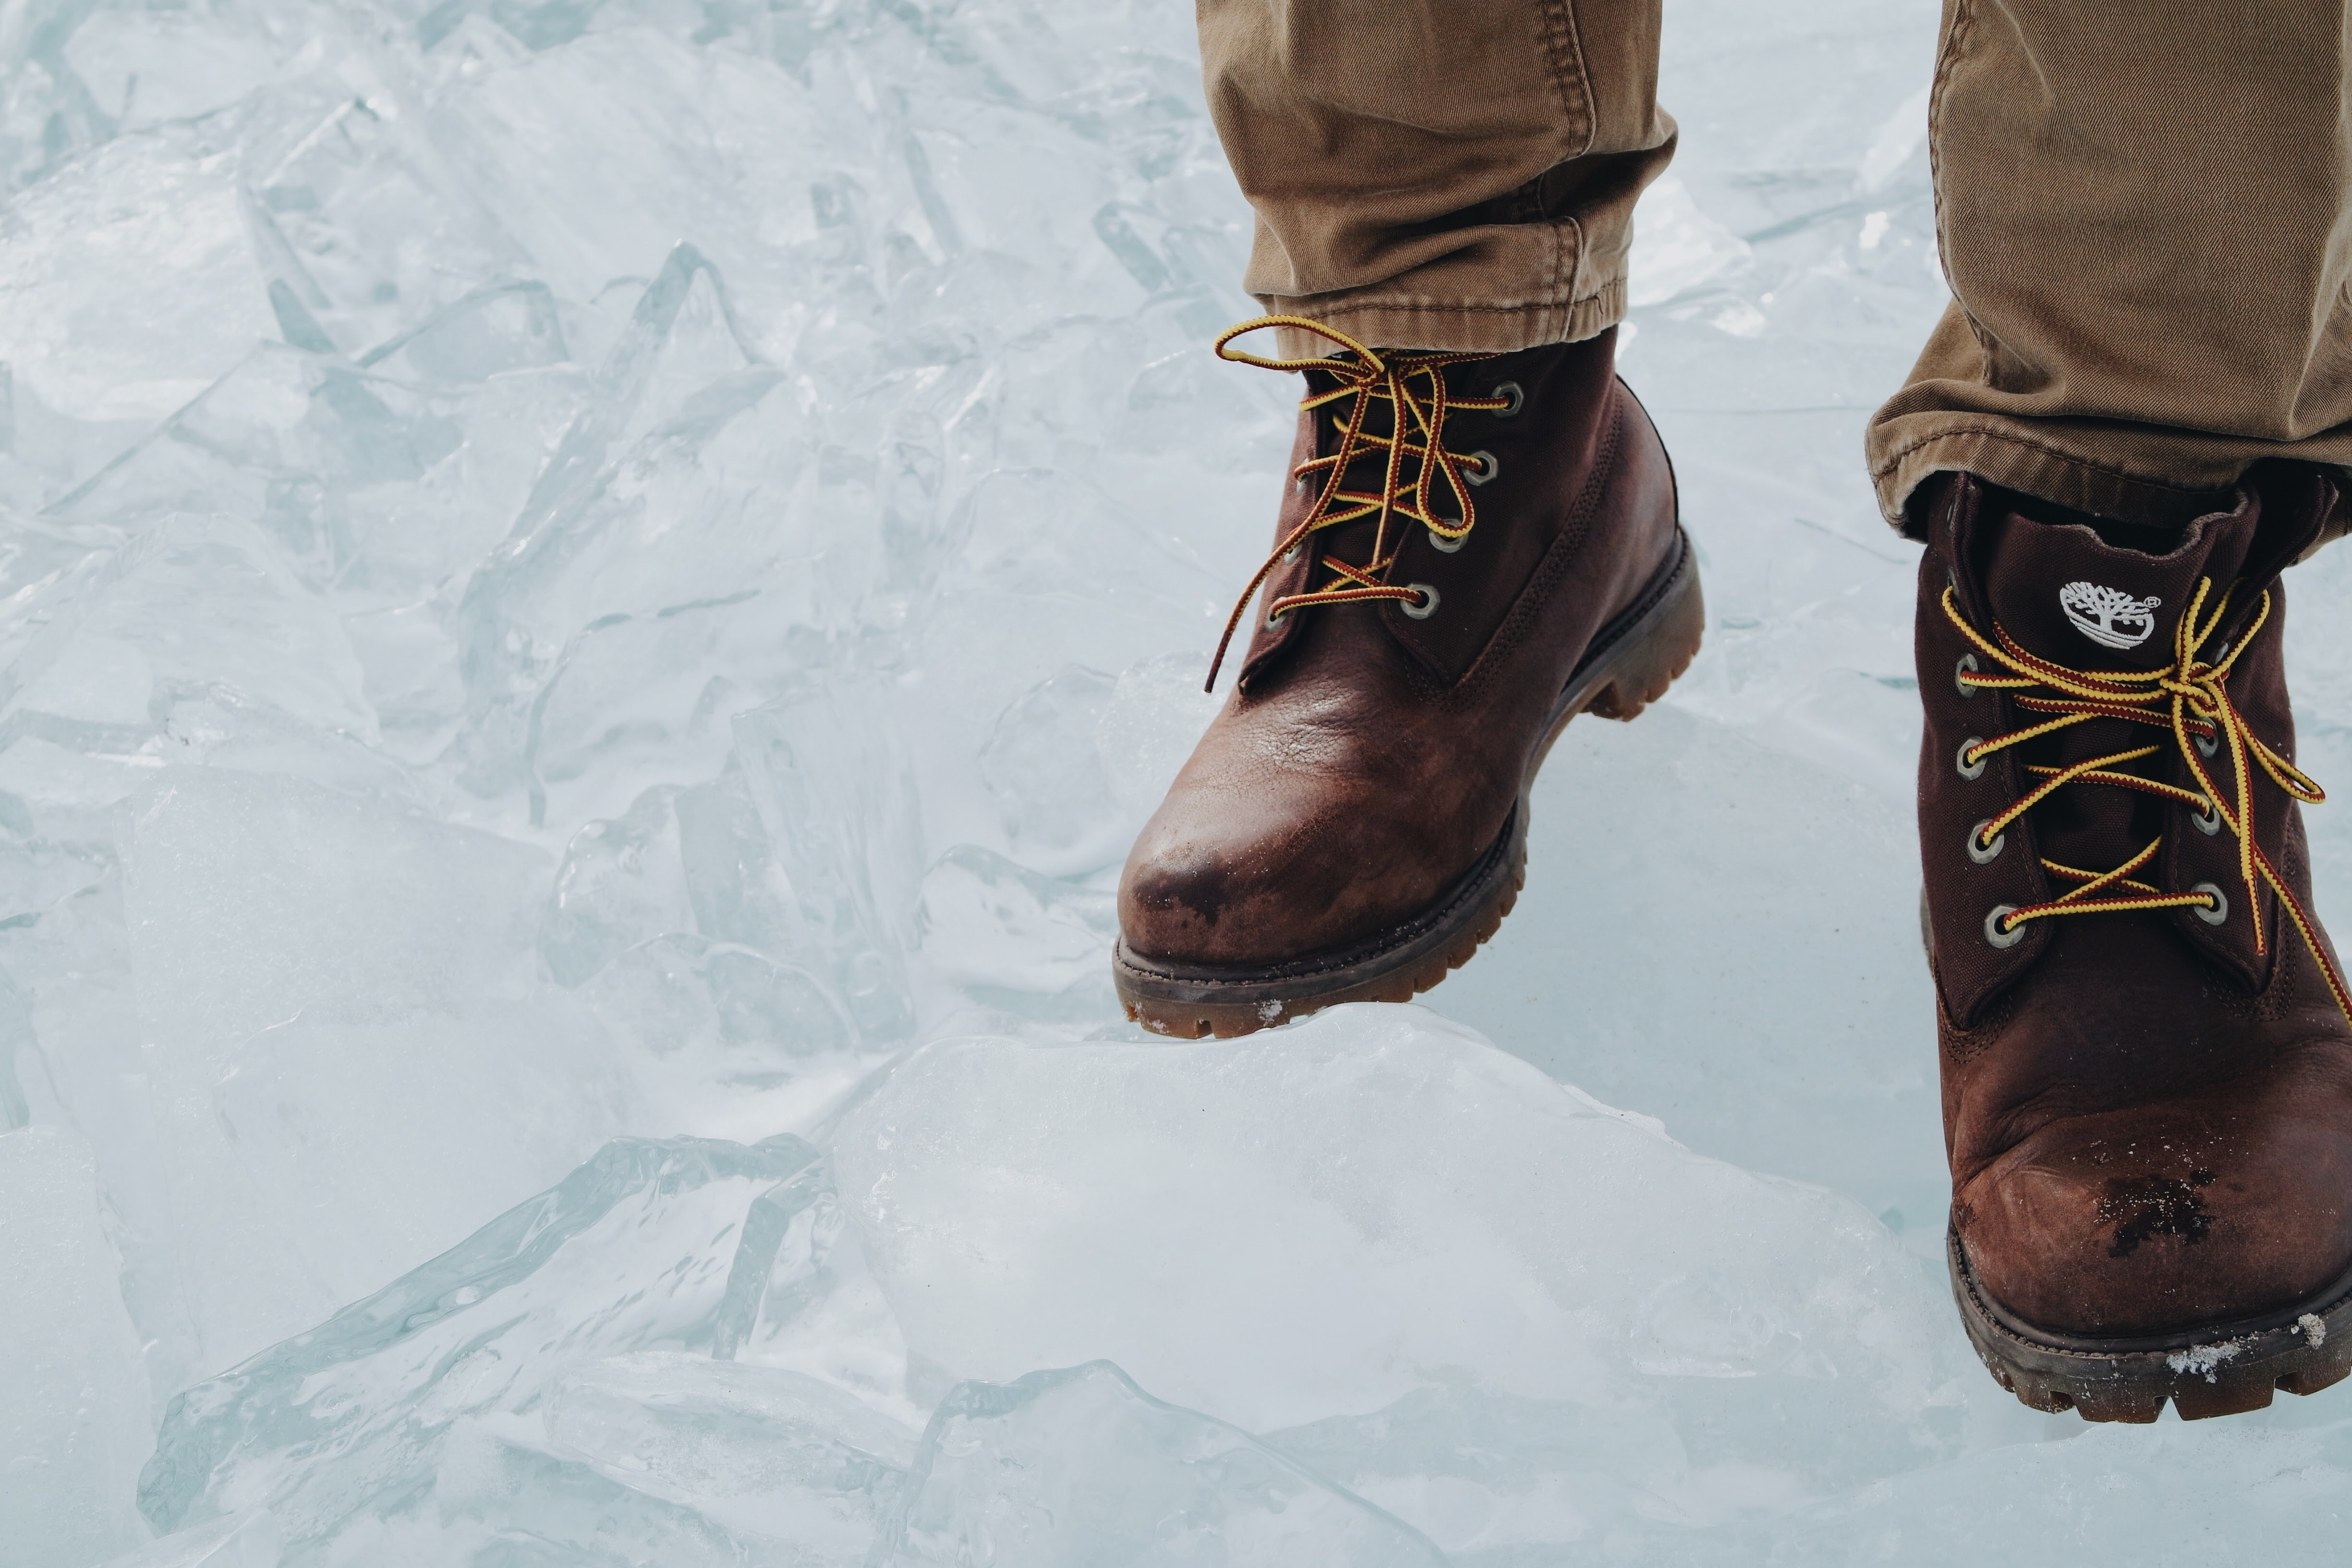 person wearing brown boots walking on snow ground